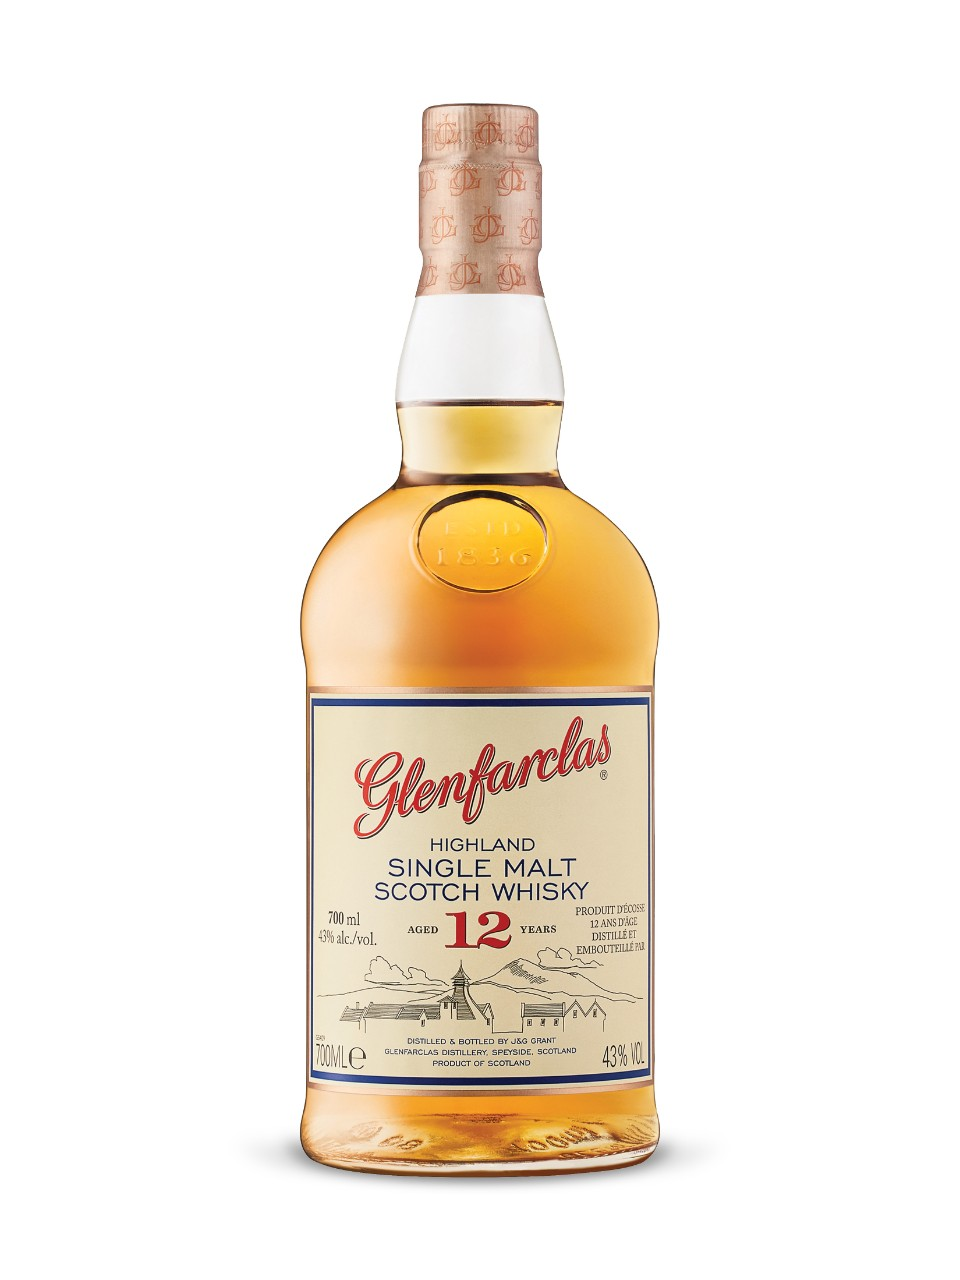 Glenfarclas12-Year-Old Highland Single Malt Scotch Whisky from LCBO